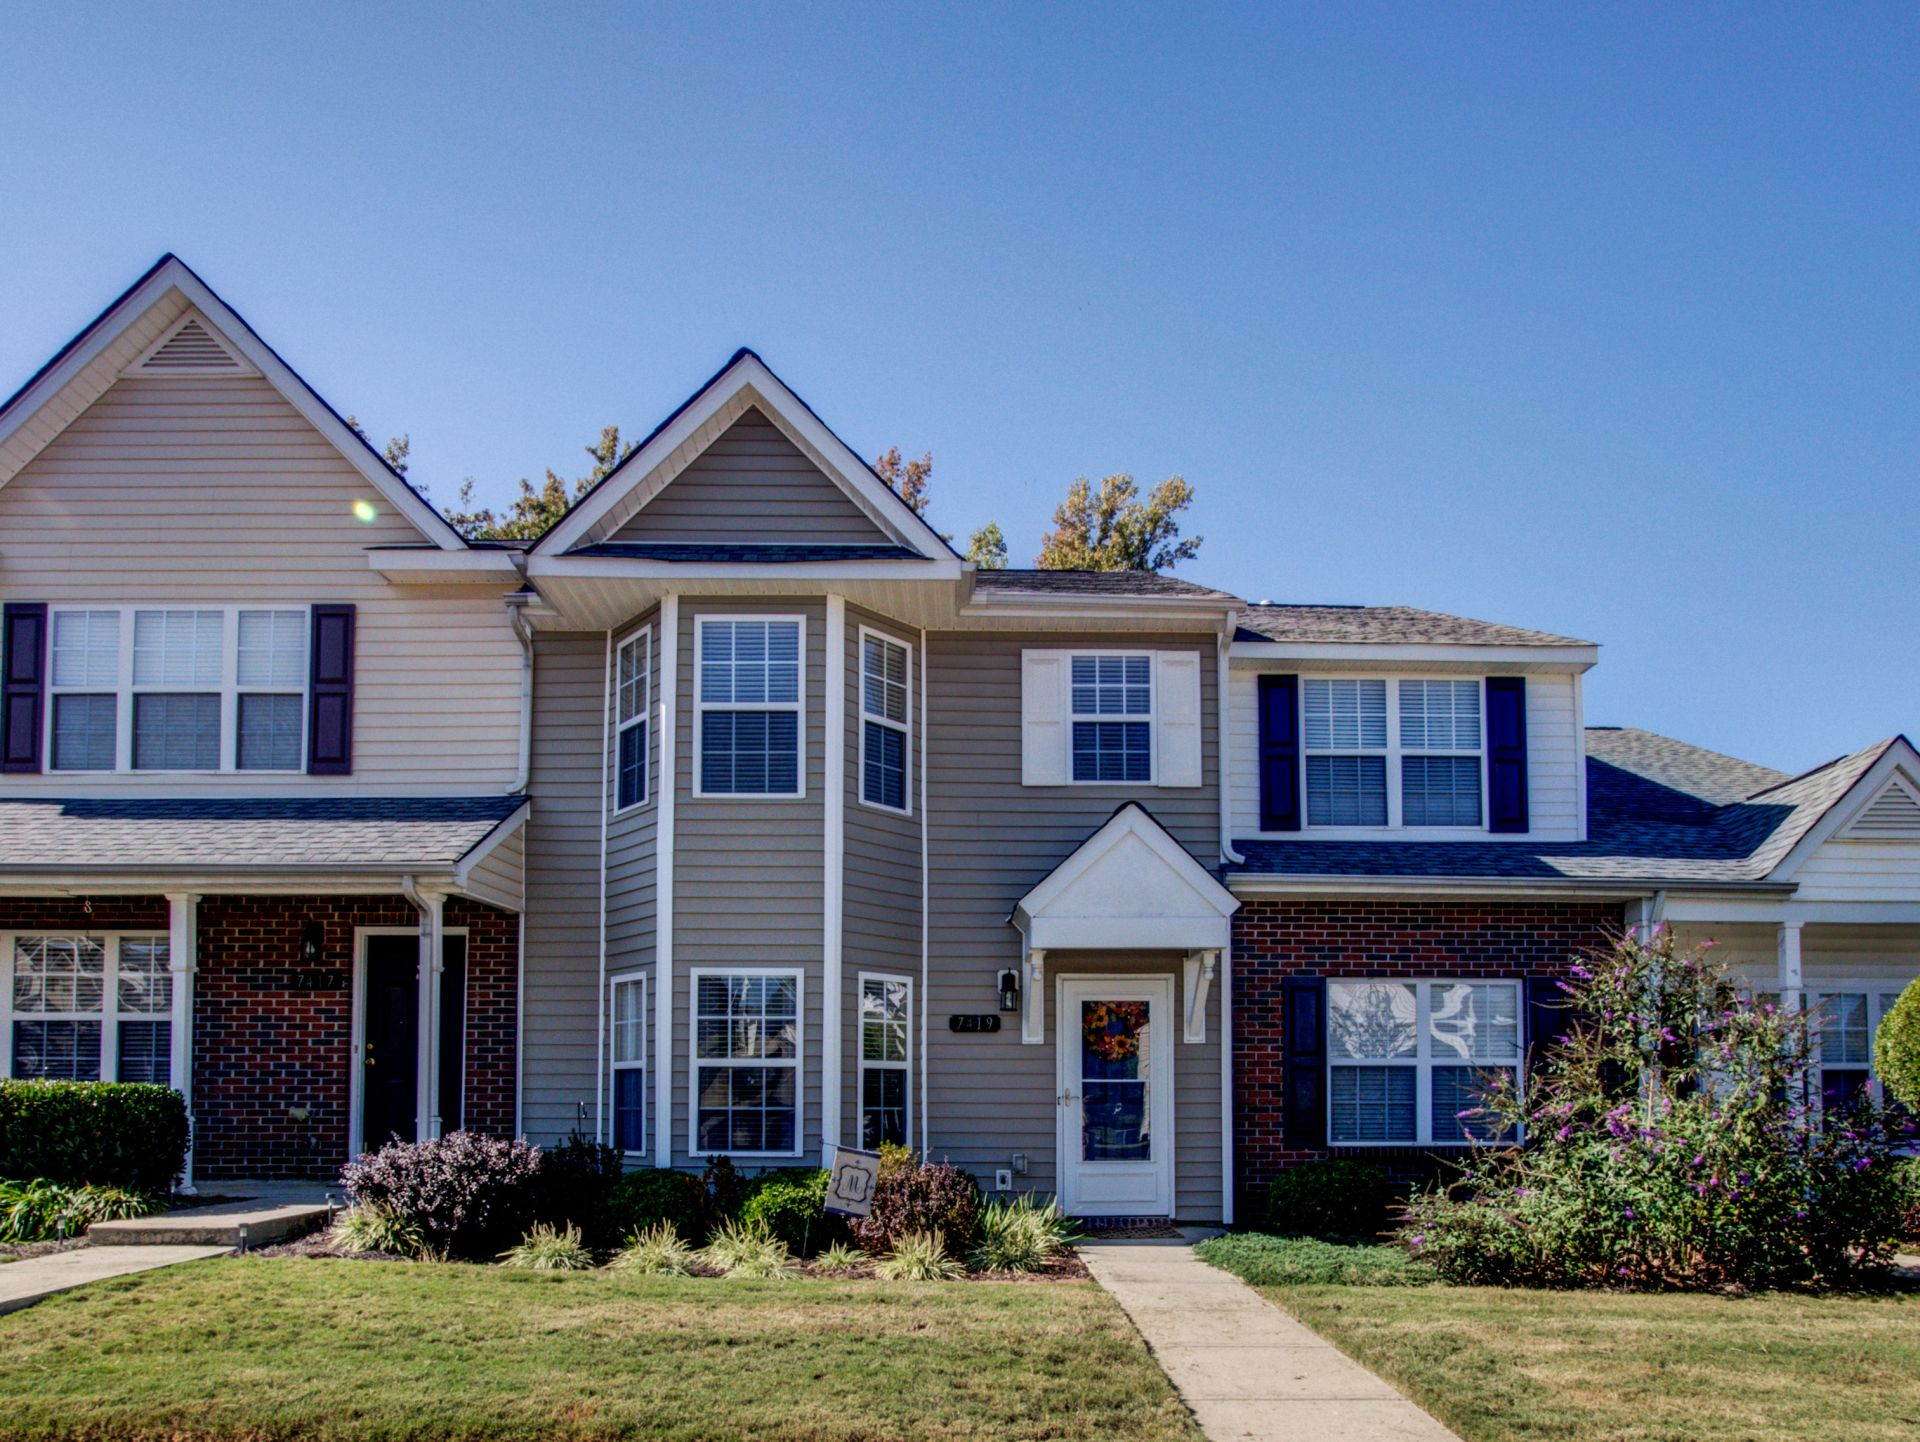 OPEN HOUSE 7419 SUN DANCE DRIVE THIS SATURDAY OCTOBER 22ND